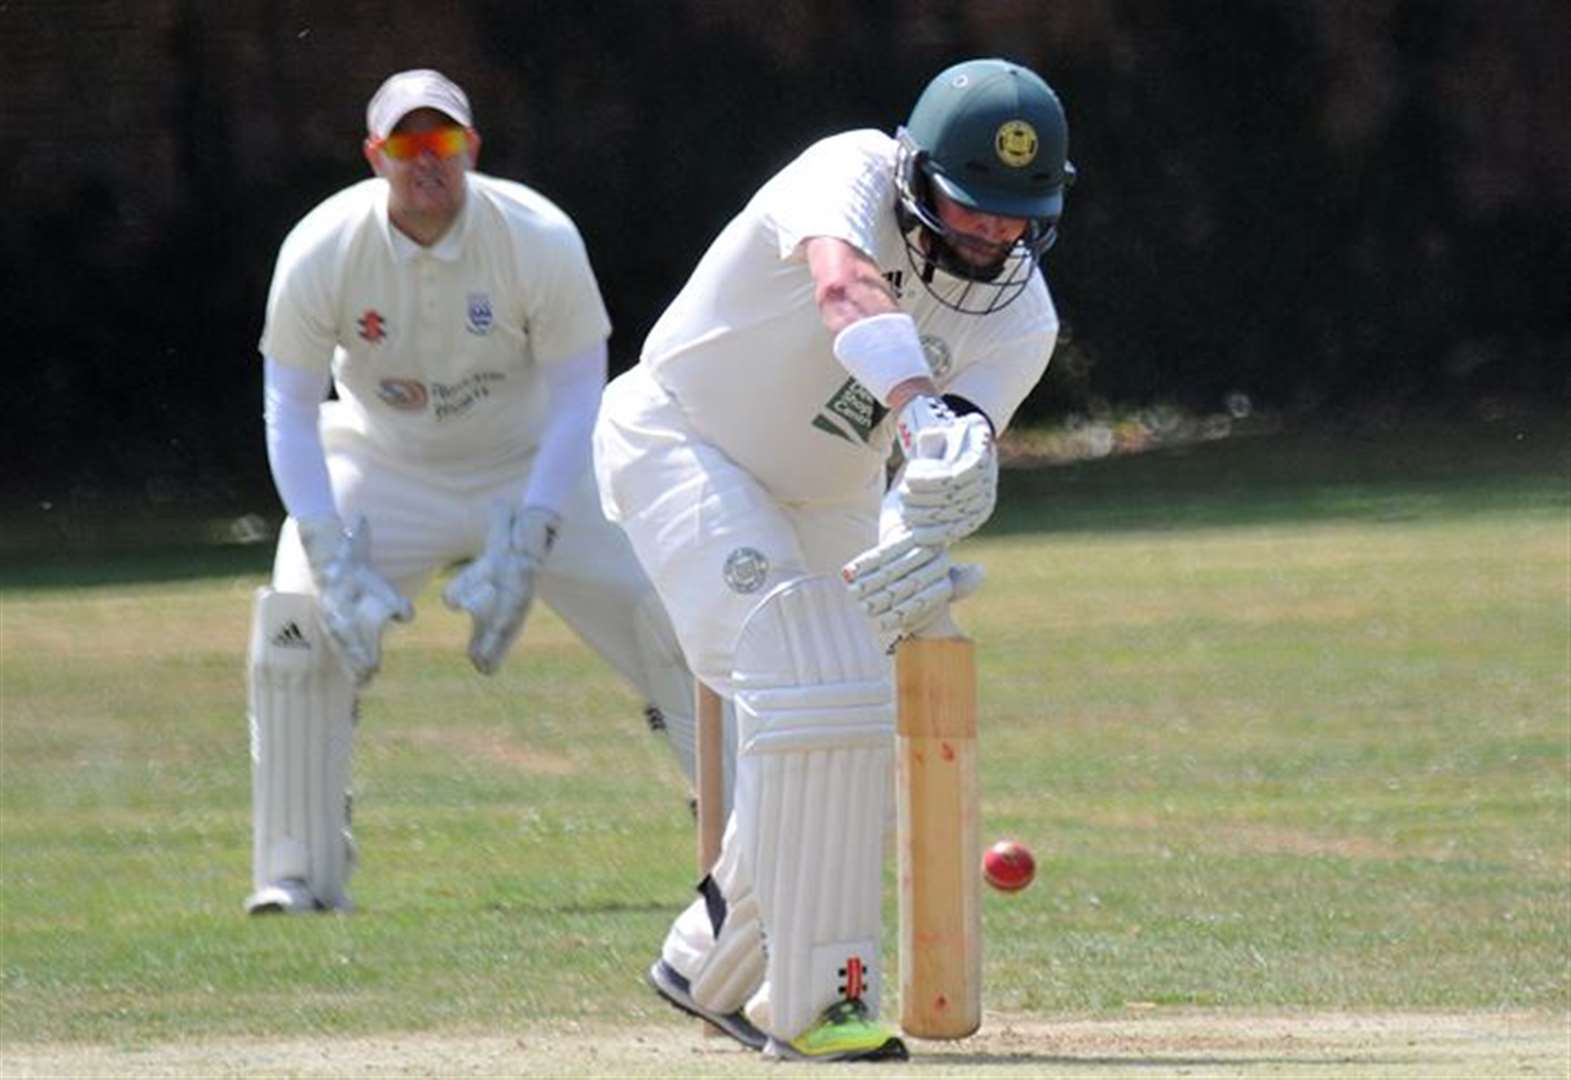 CRICKET: Deeping defeated by Spa's run spree